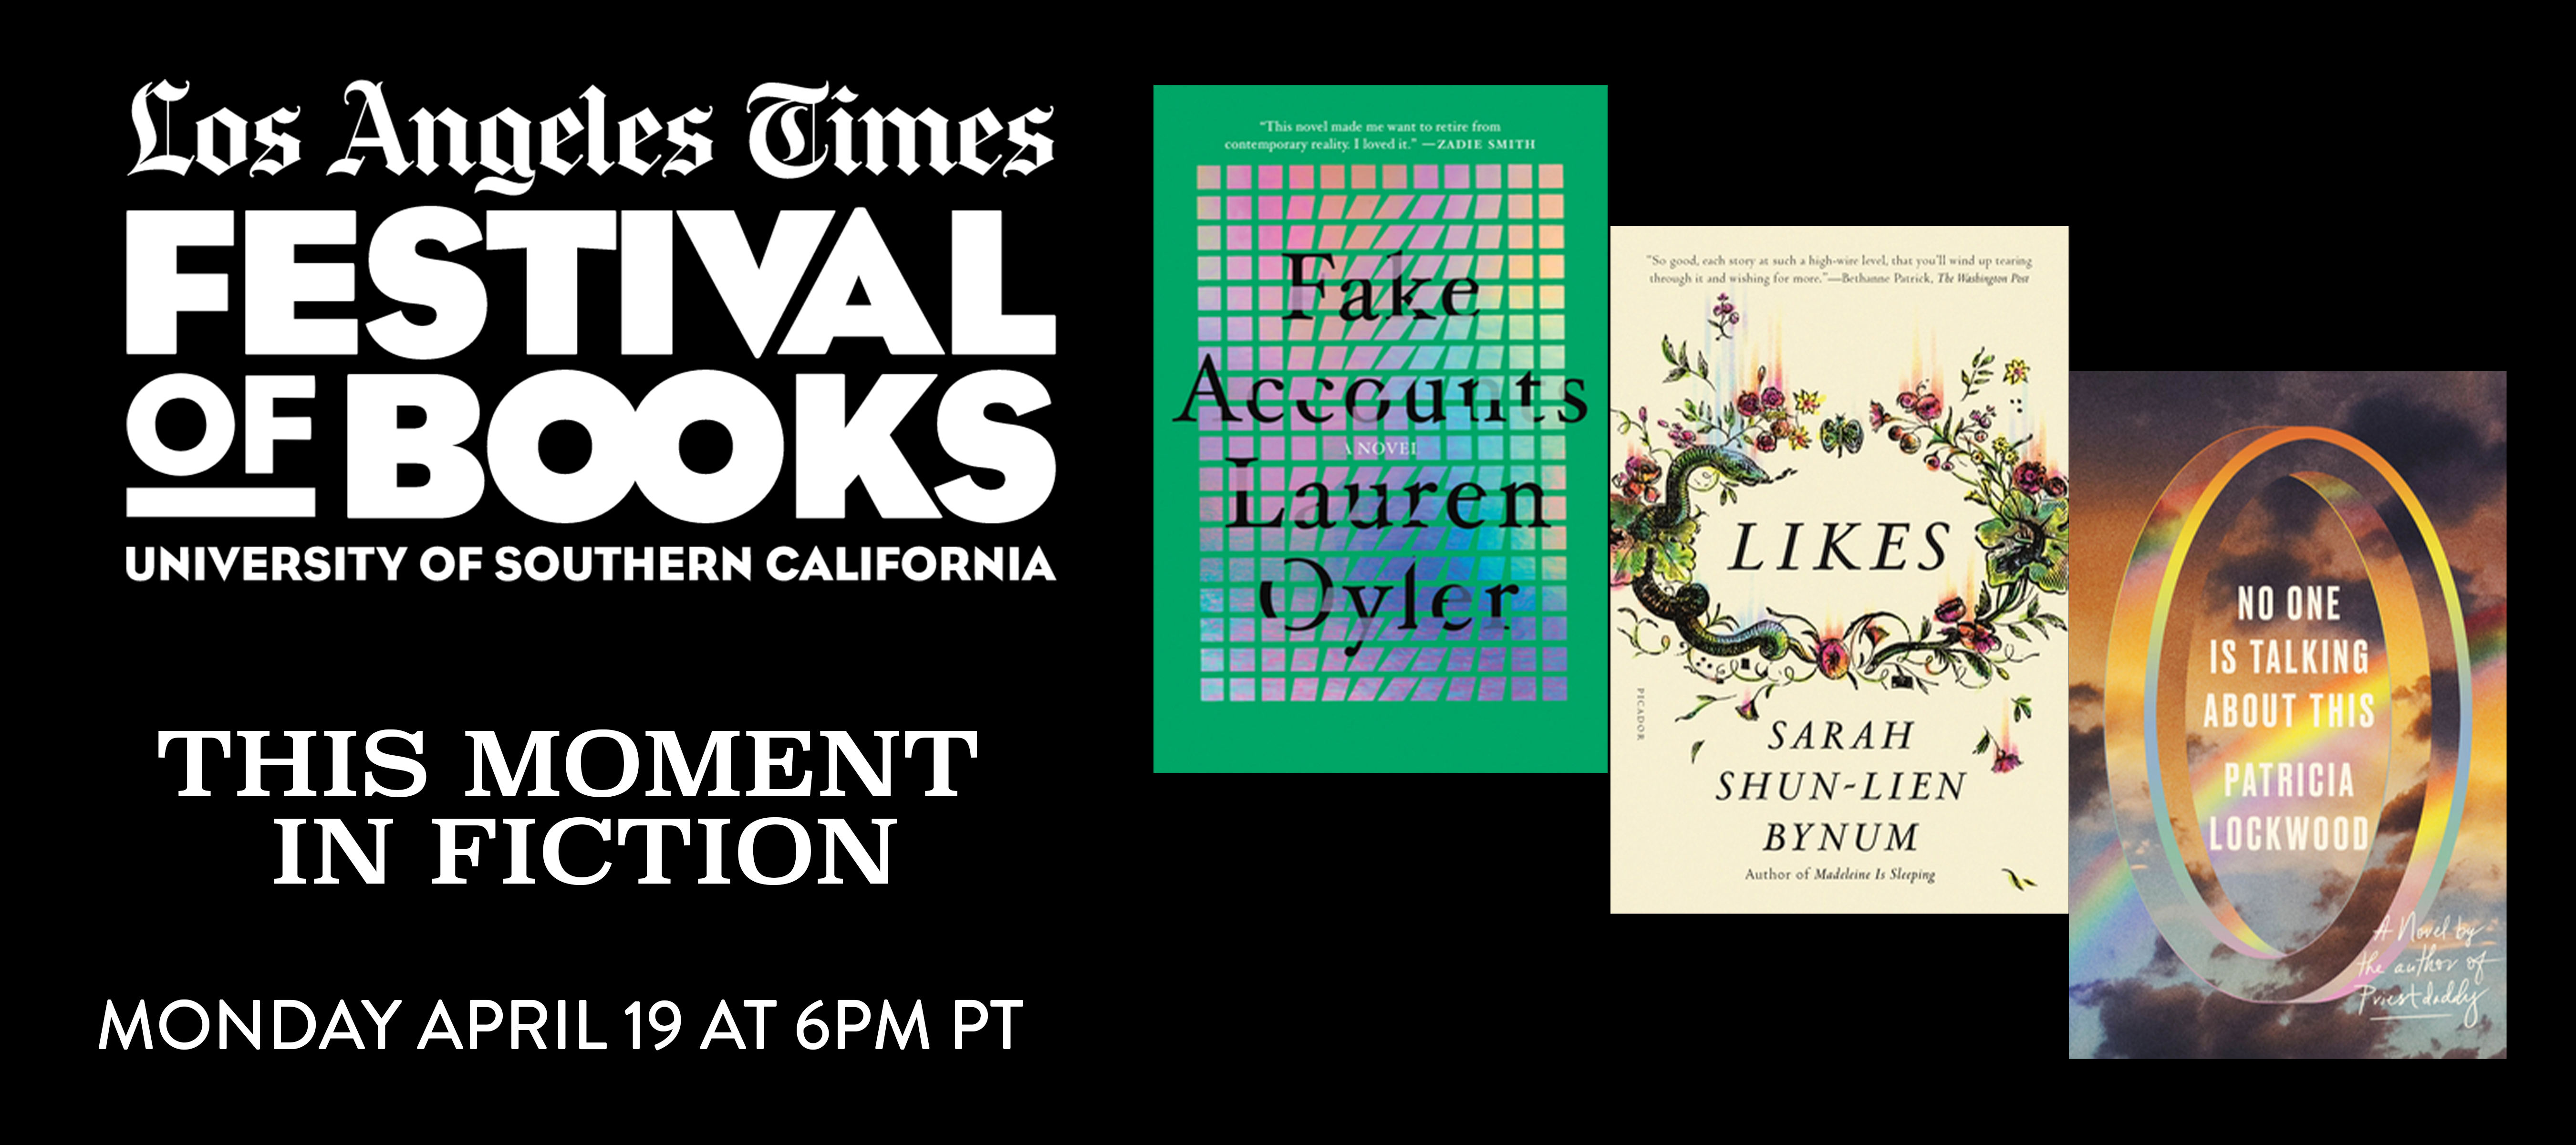 Monday, April 19, 6:00p Los Angeles Times Festival of Books presents This Moment in Fiction